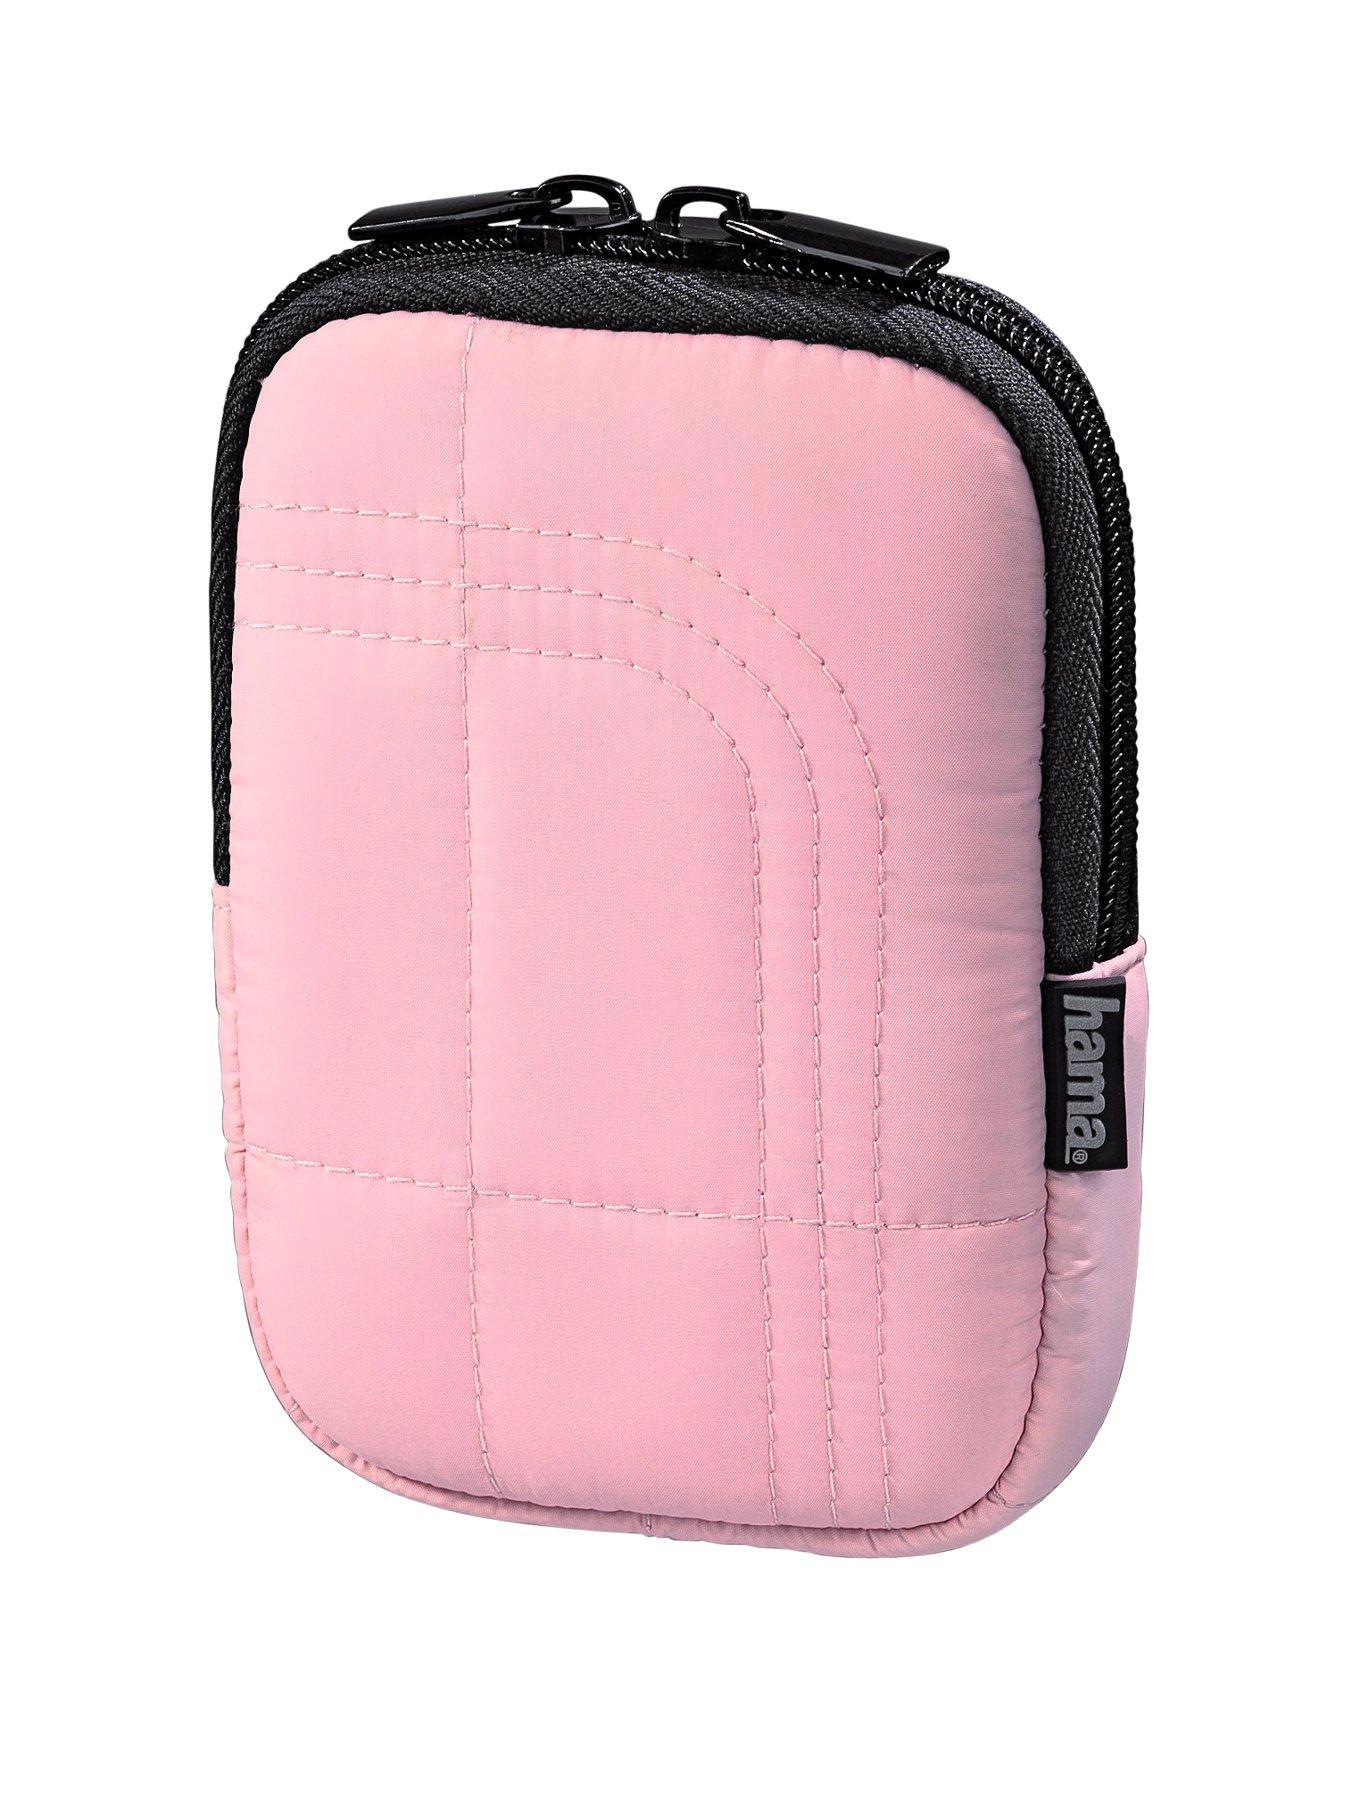 HAMA Fancy Memory 50C Camera Bag Pink at Very, from Littlewoods